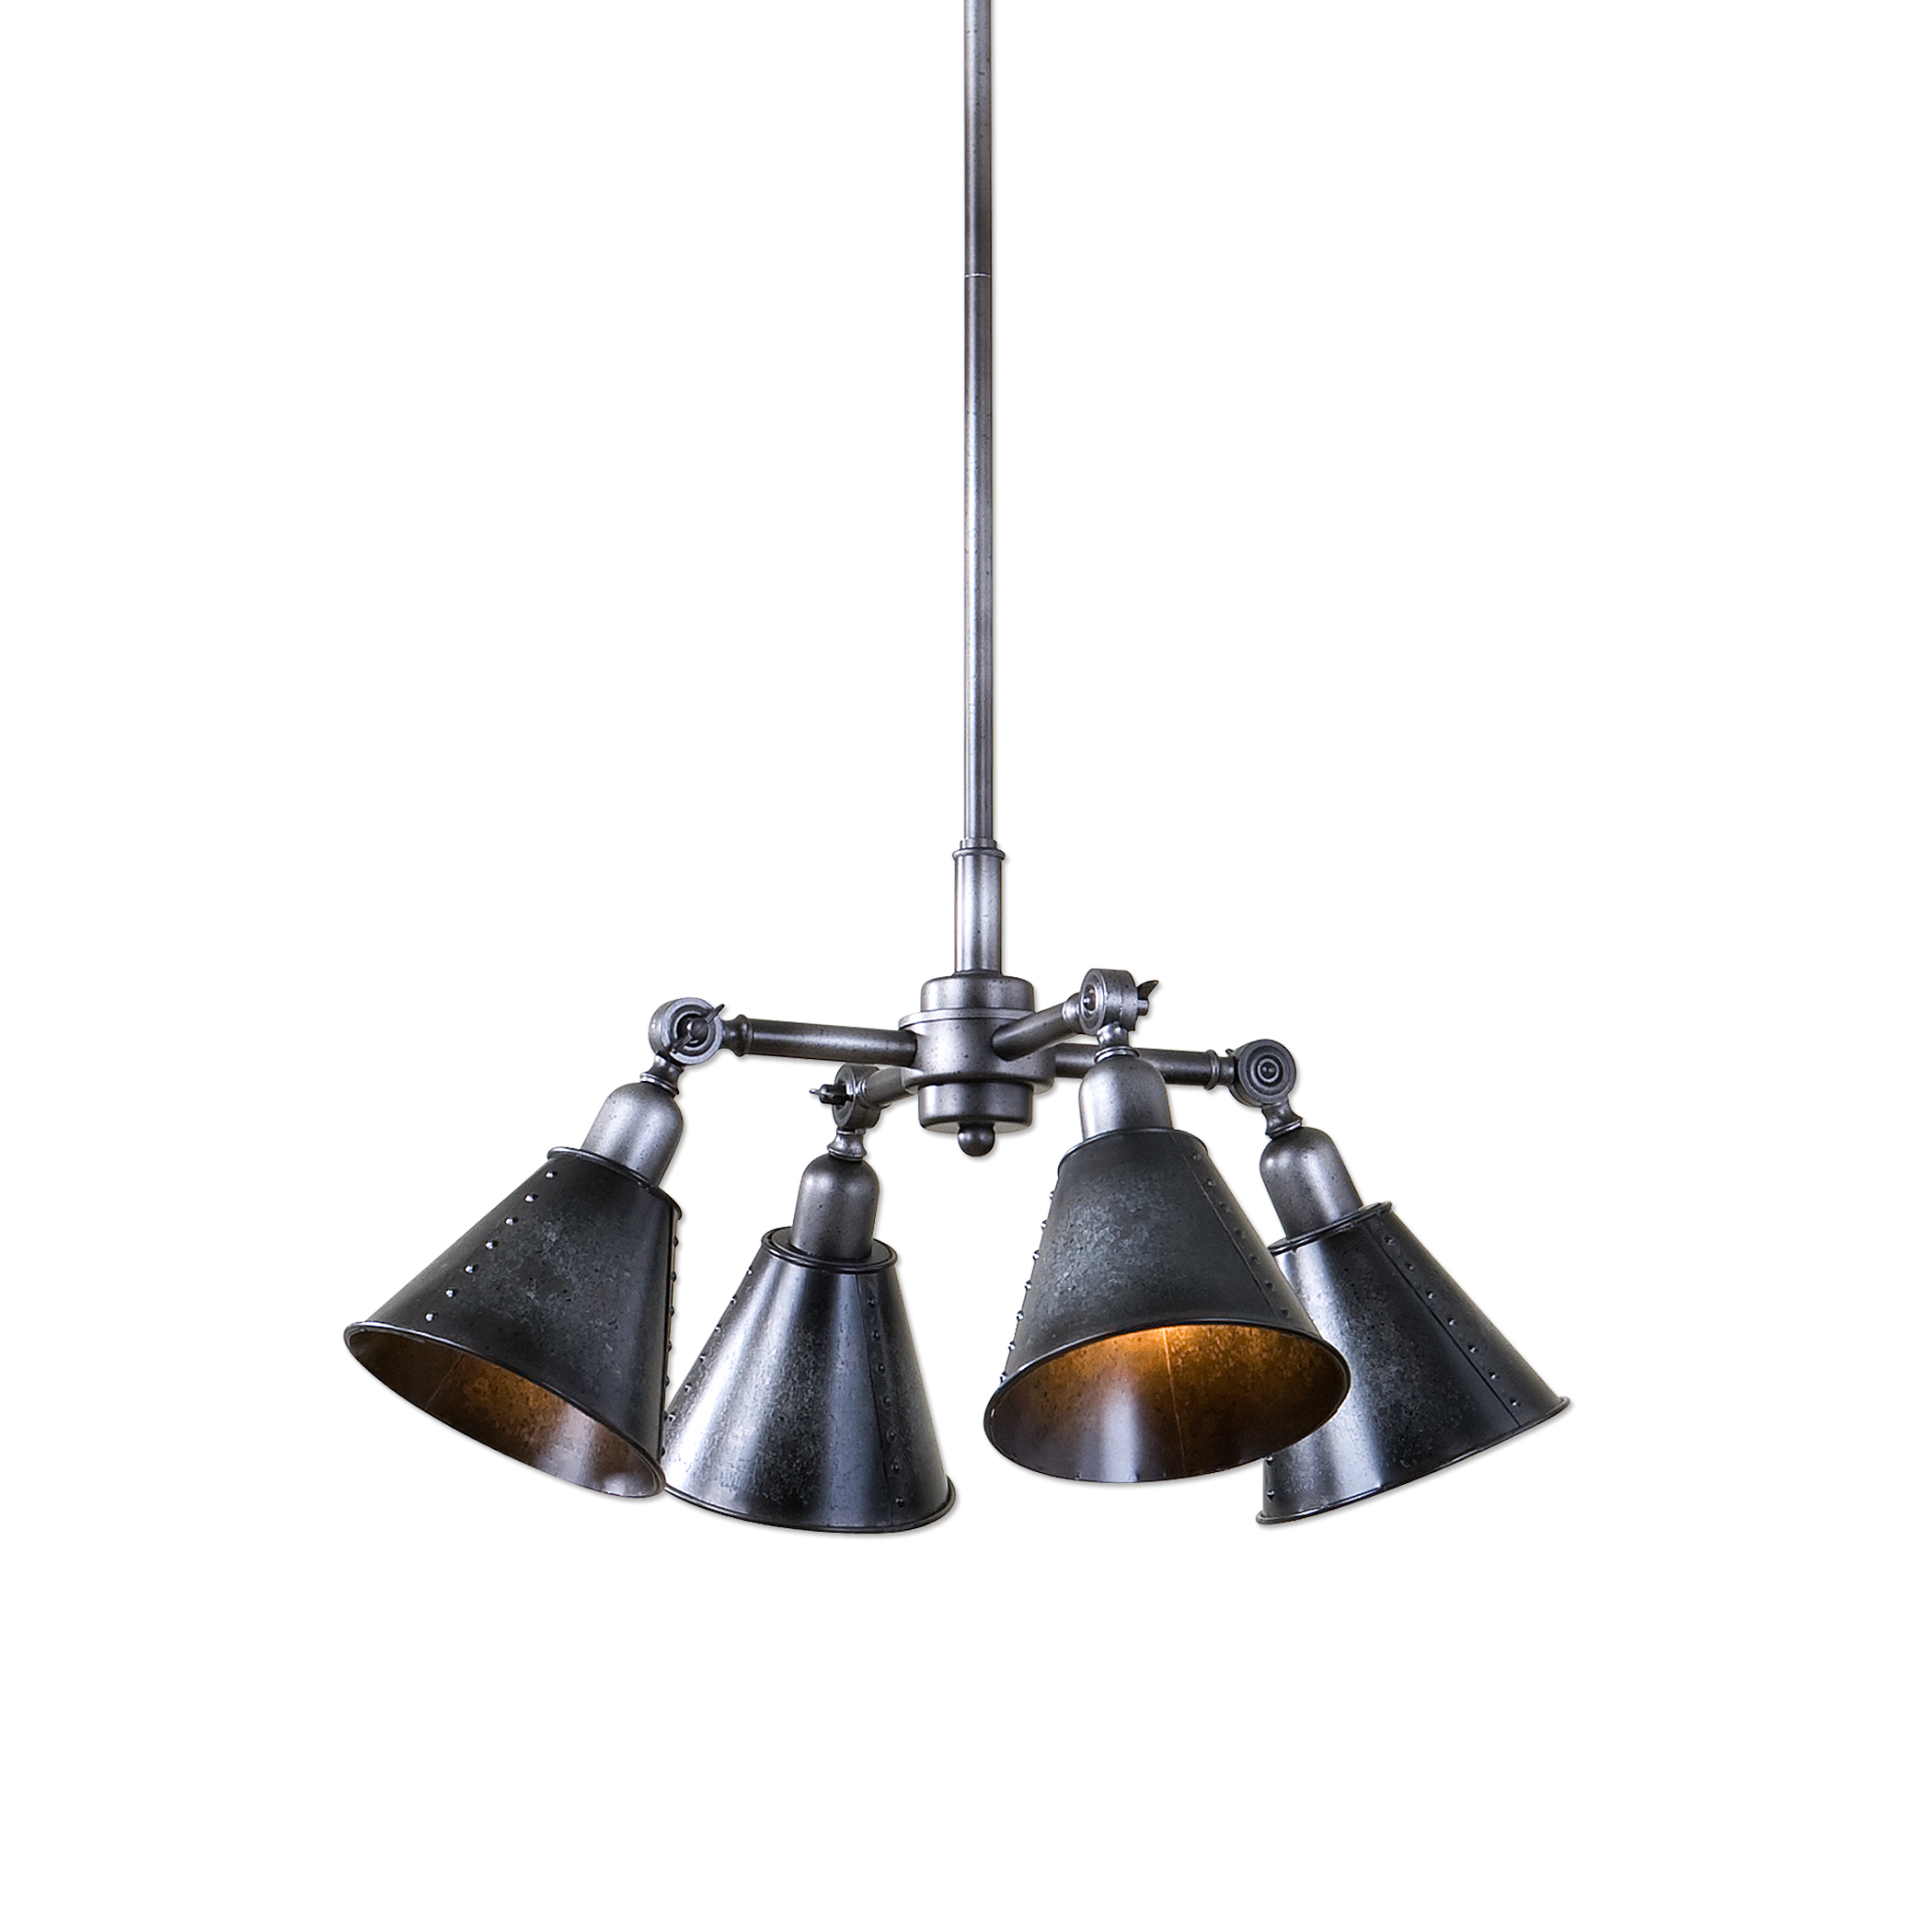 Uttermost Lighting Fixtures Fumant 4 Light Industrial Pendant - Item Number: 22075